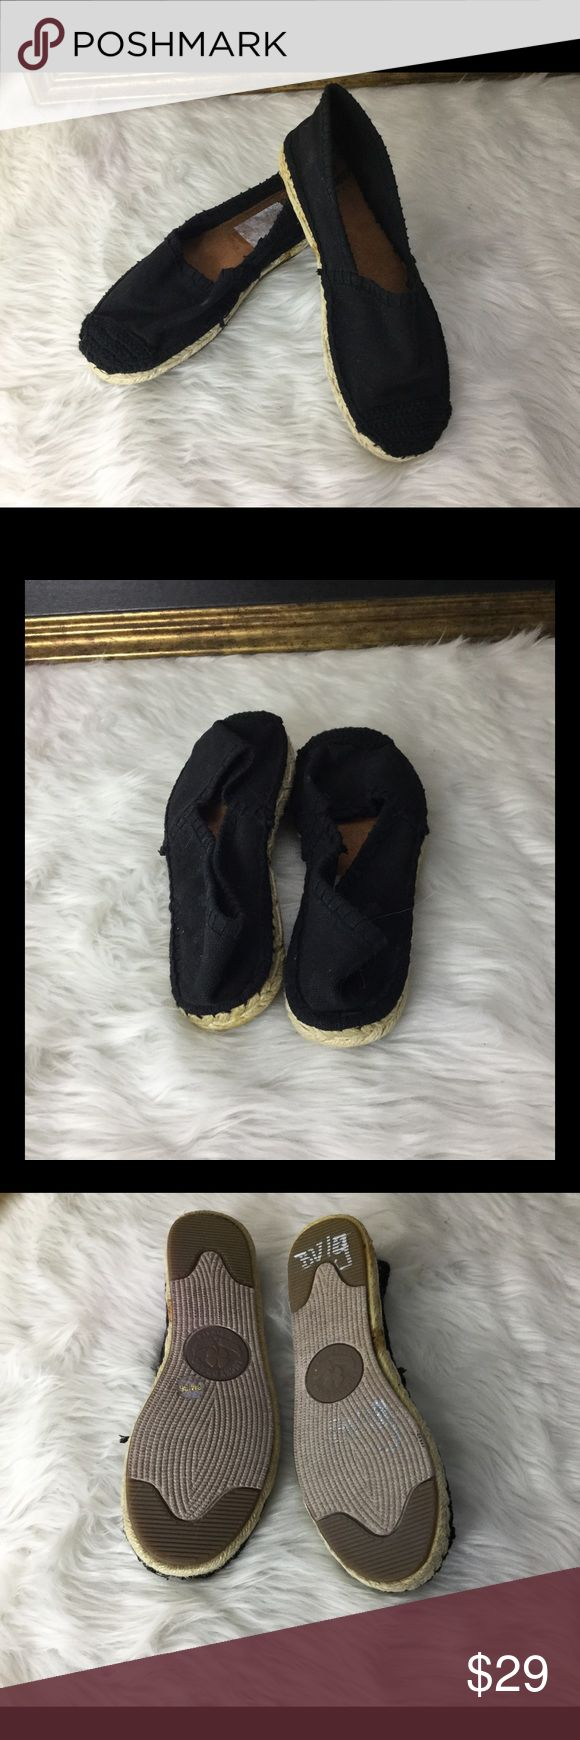 Lucky Brand Black Espadrilles Shoes.  Sz 5 Lucky Brand Espadrilles shoes.  Sz 5.  Love these!  In good condition. Lucky Brand Shoes Espadrilles